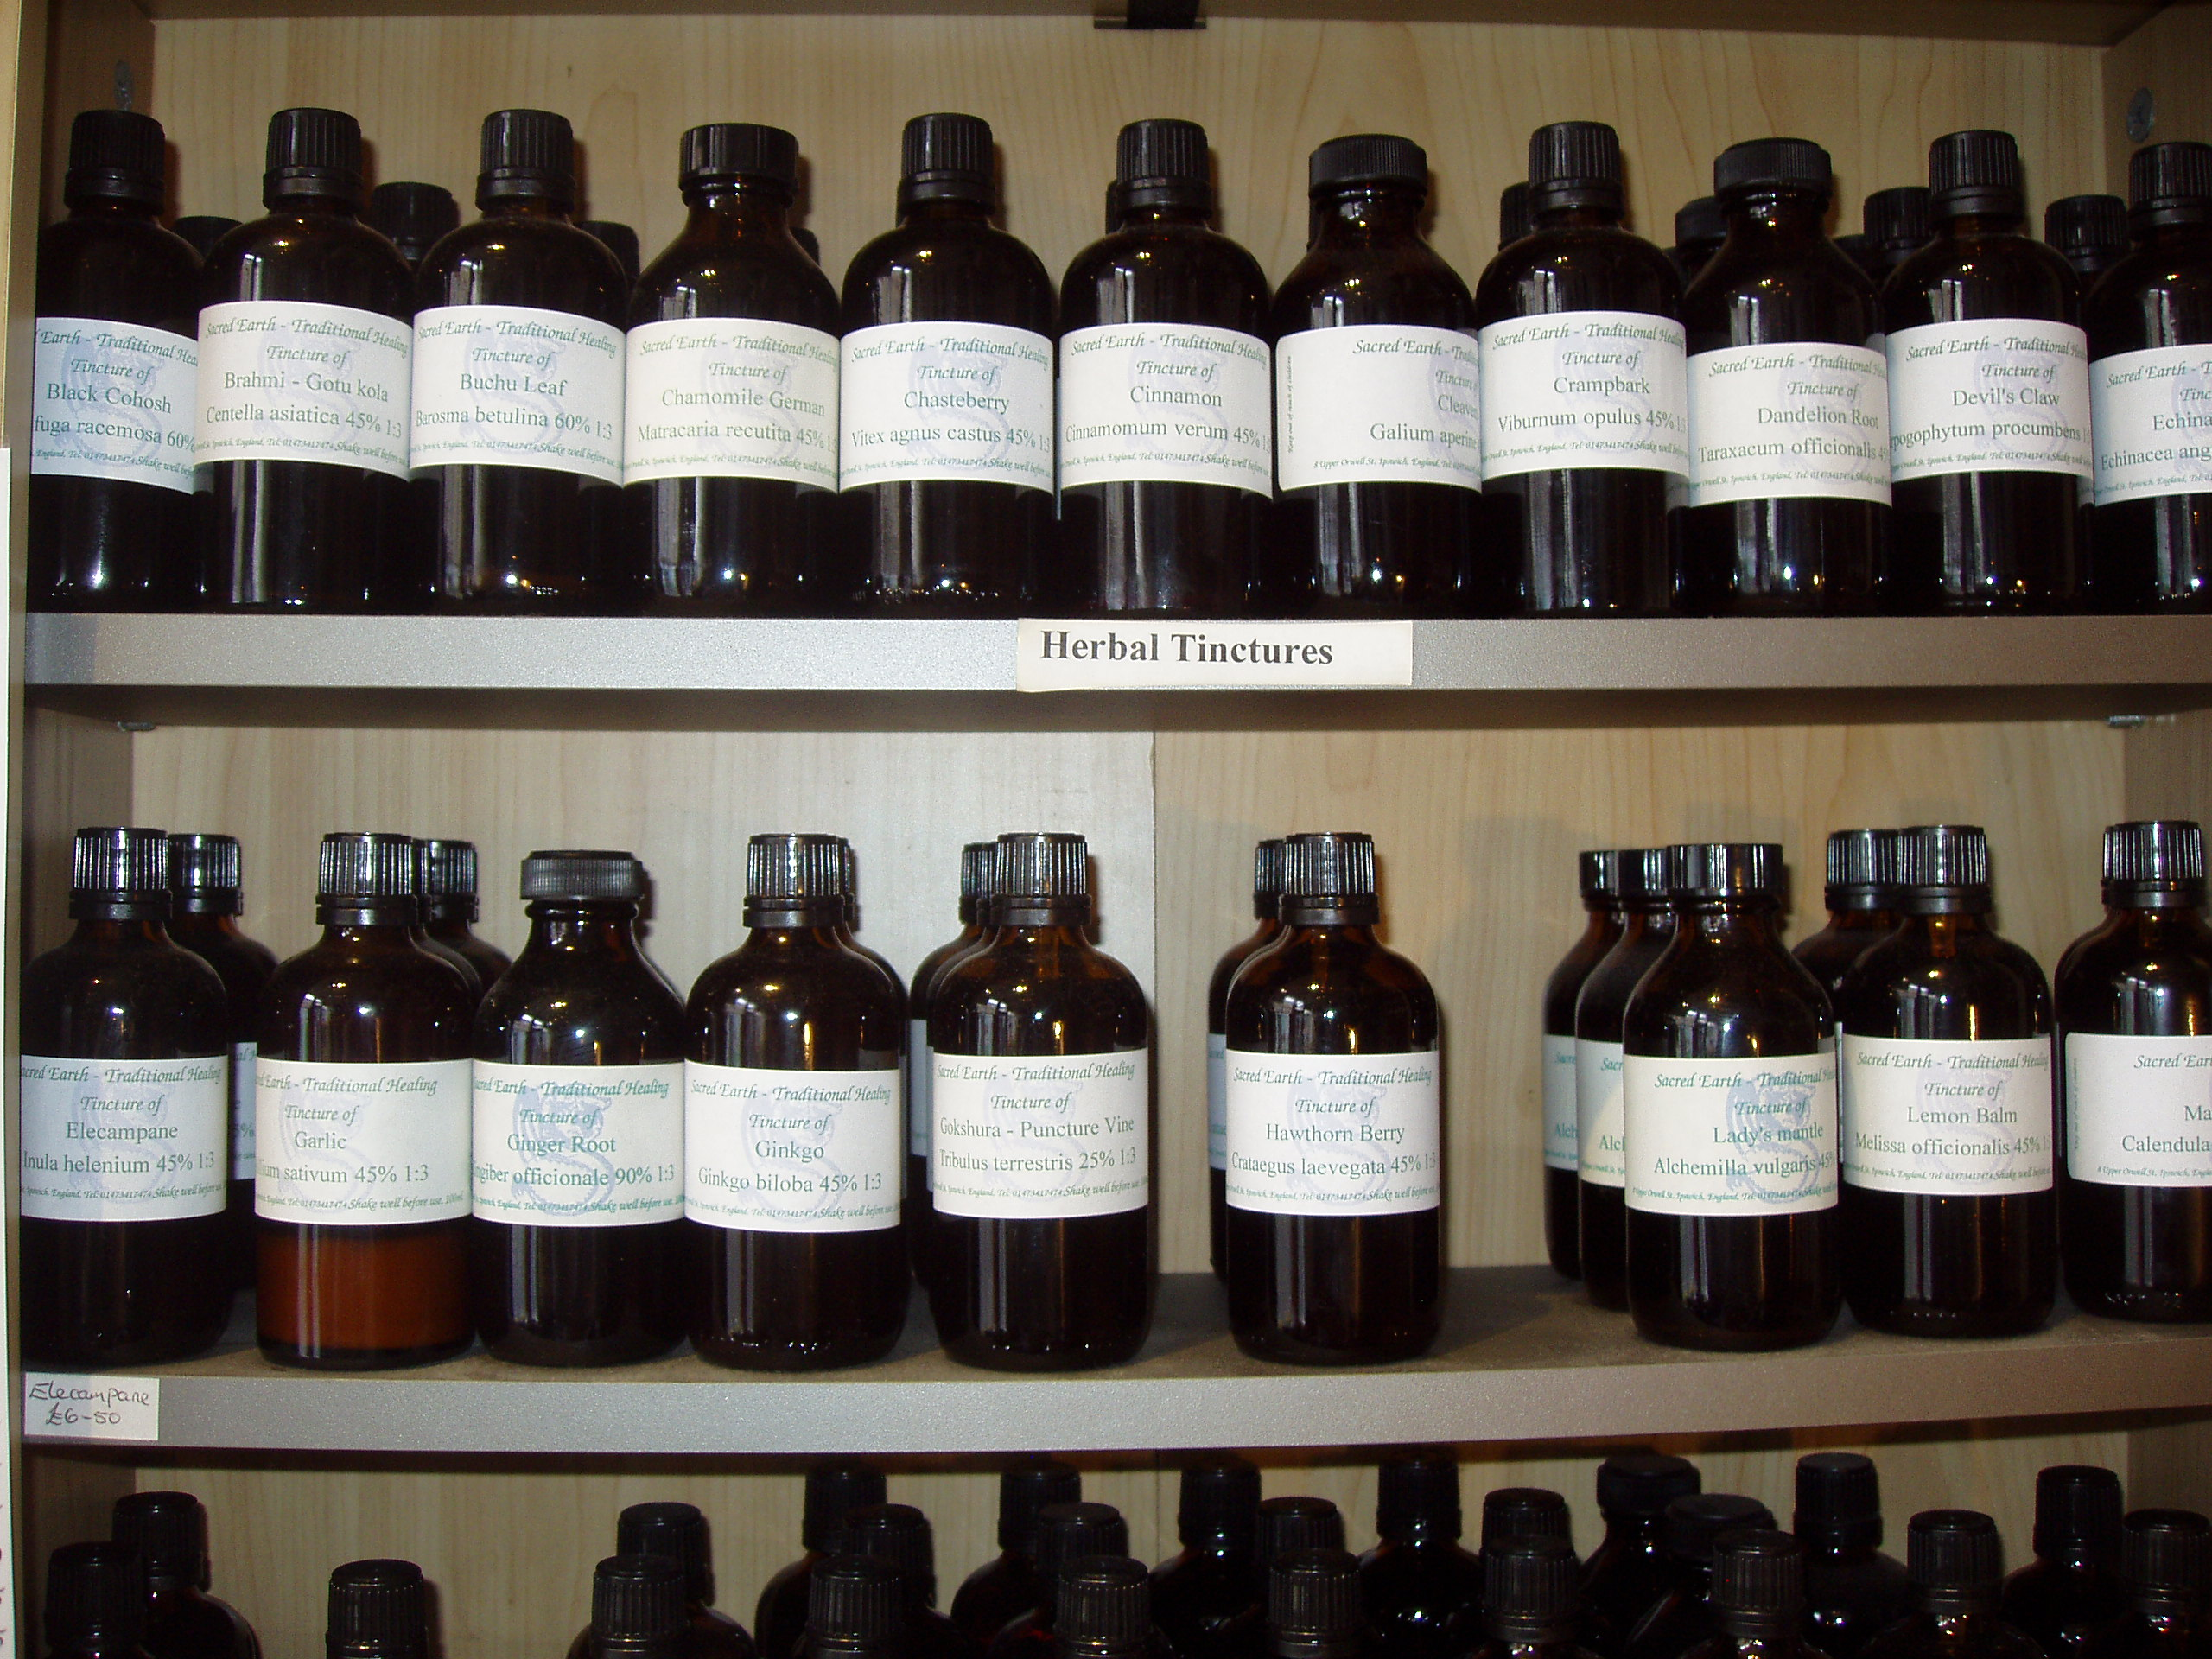 Herbal Tinctures - Skullcap herb